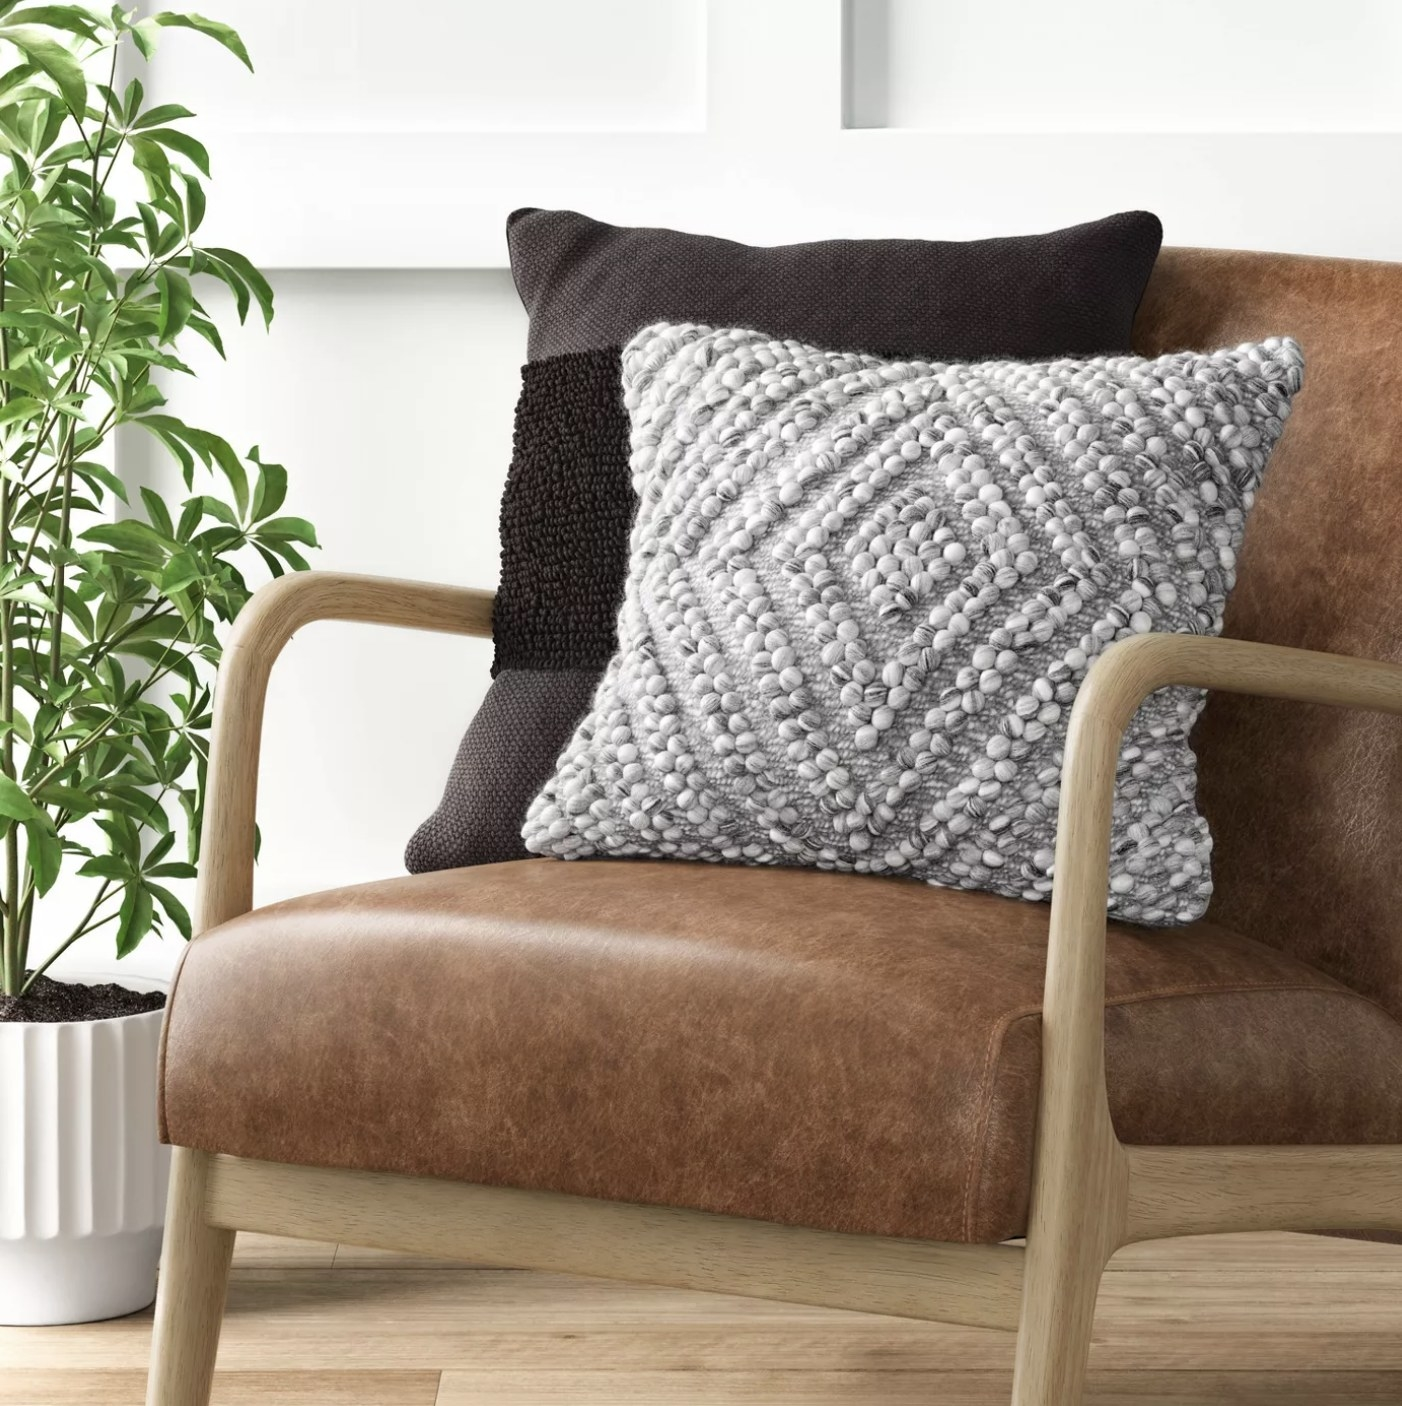 Diamond patterned throw pillow on a chair